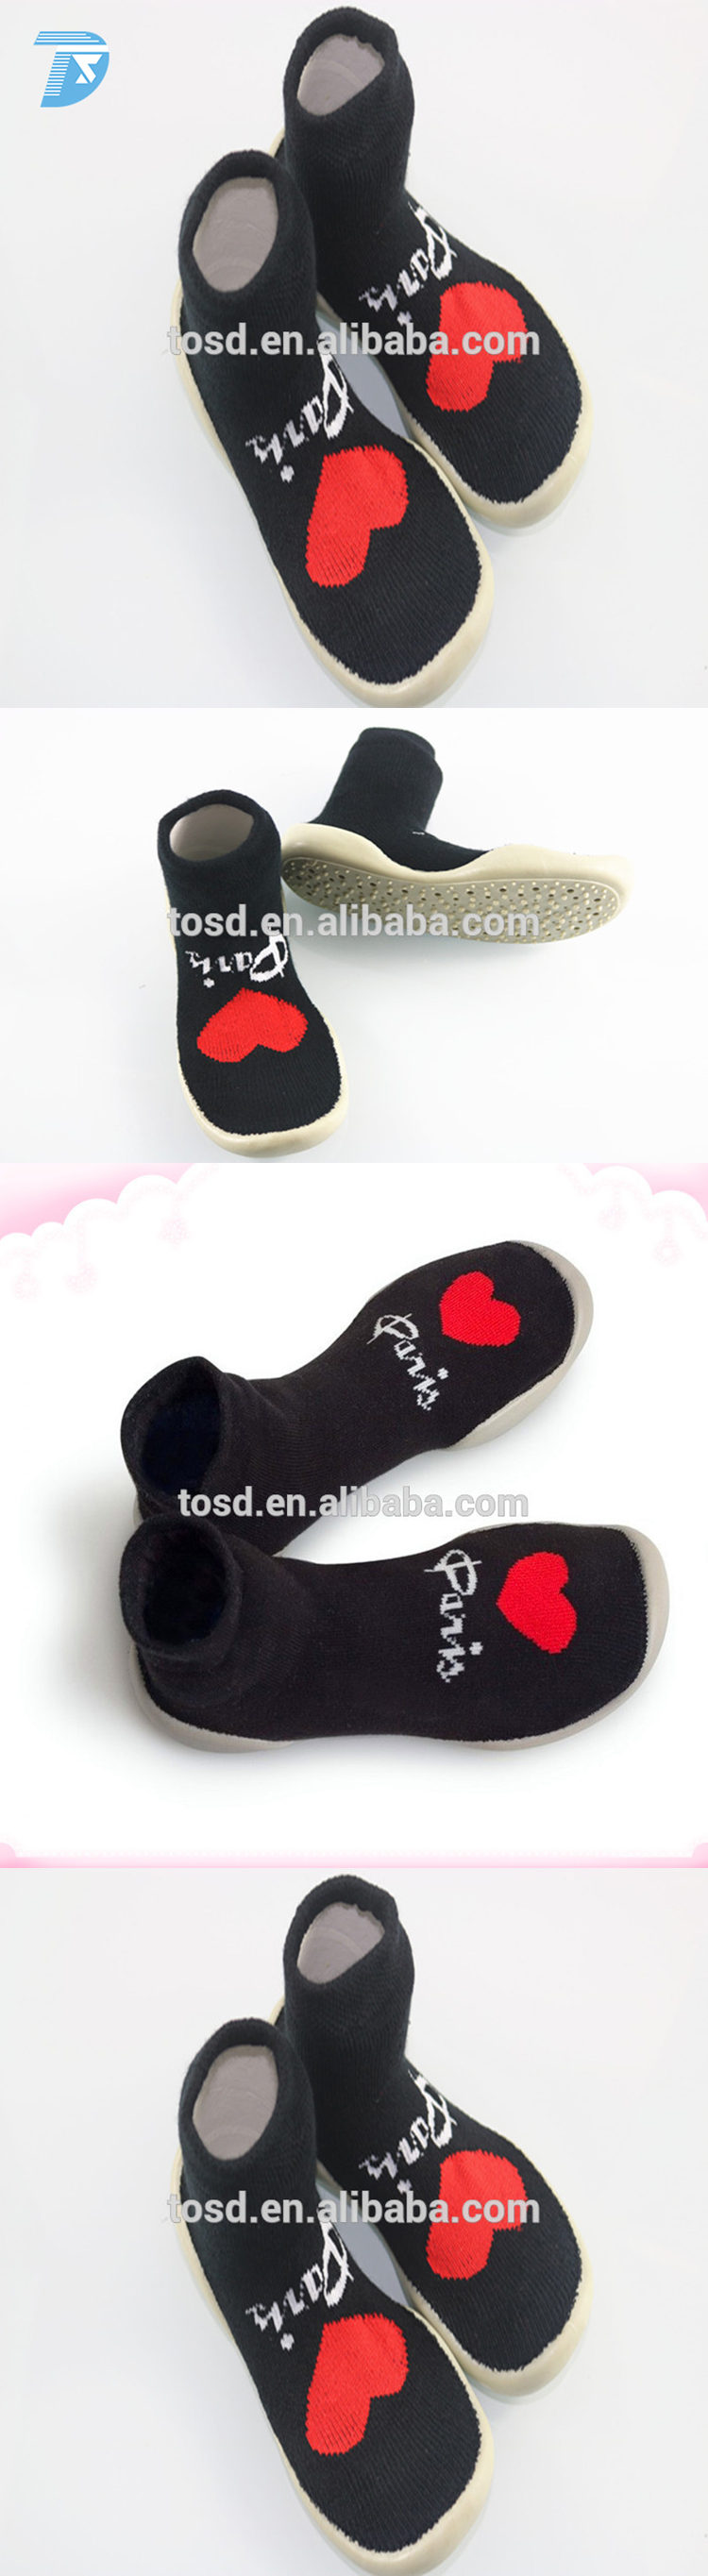 2017 Newest Baby Socks Non Slip With Rubber Soles sock Shoes Wrap